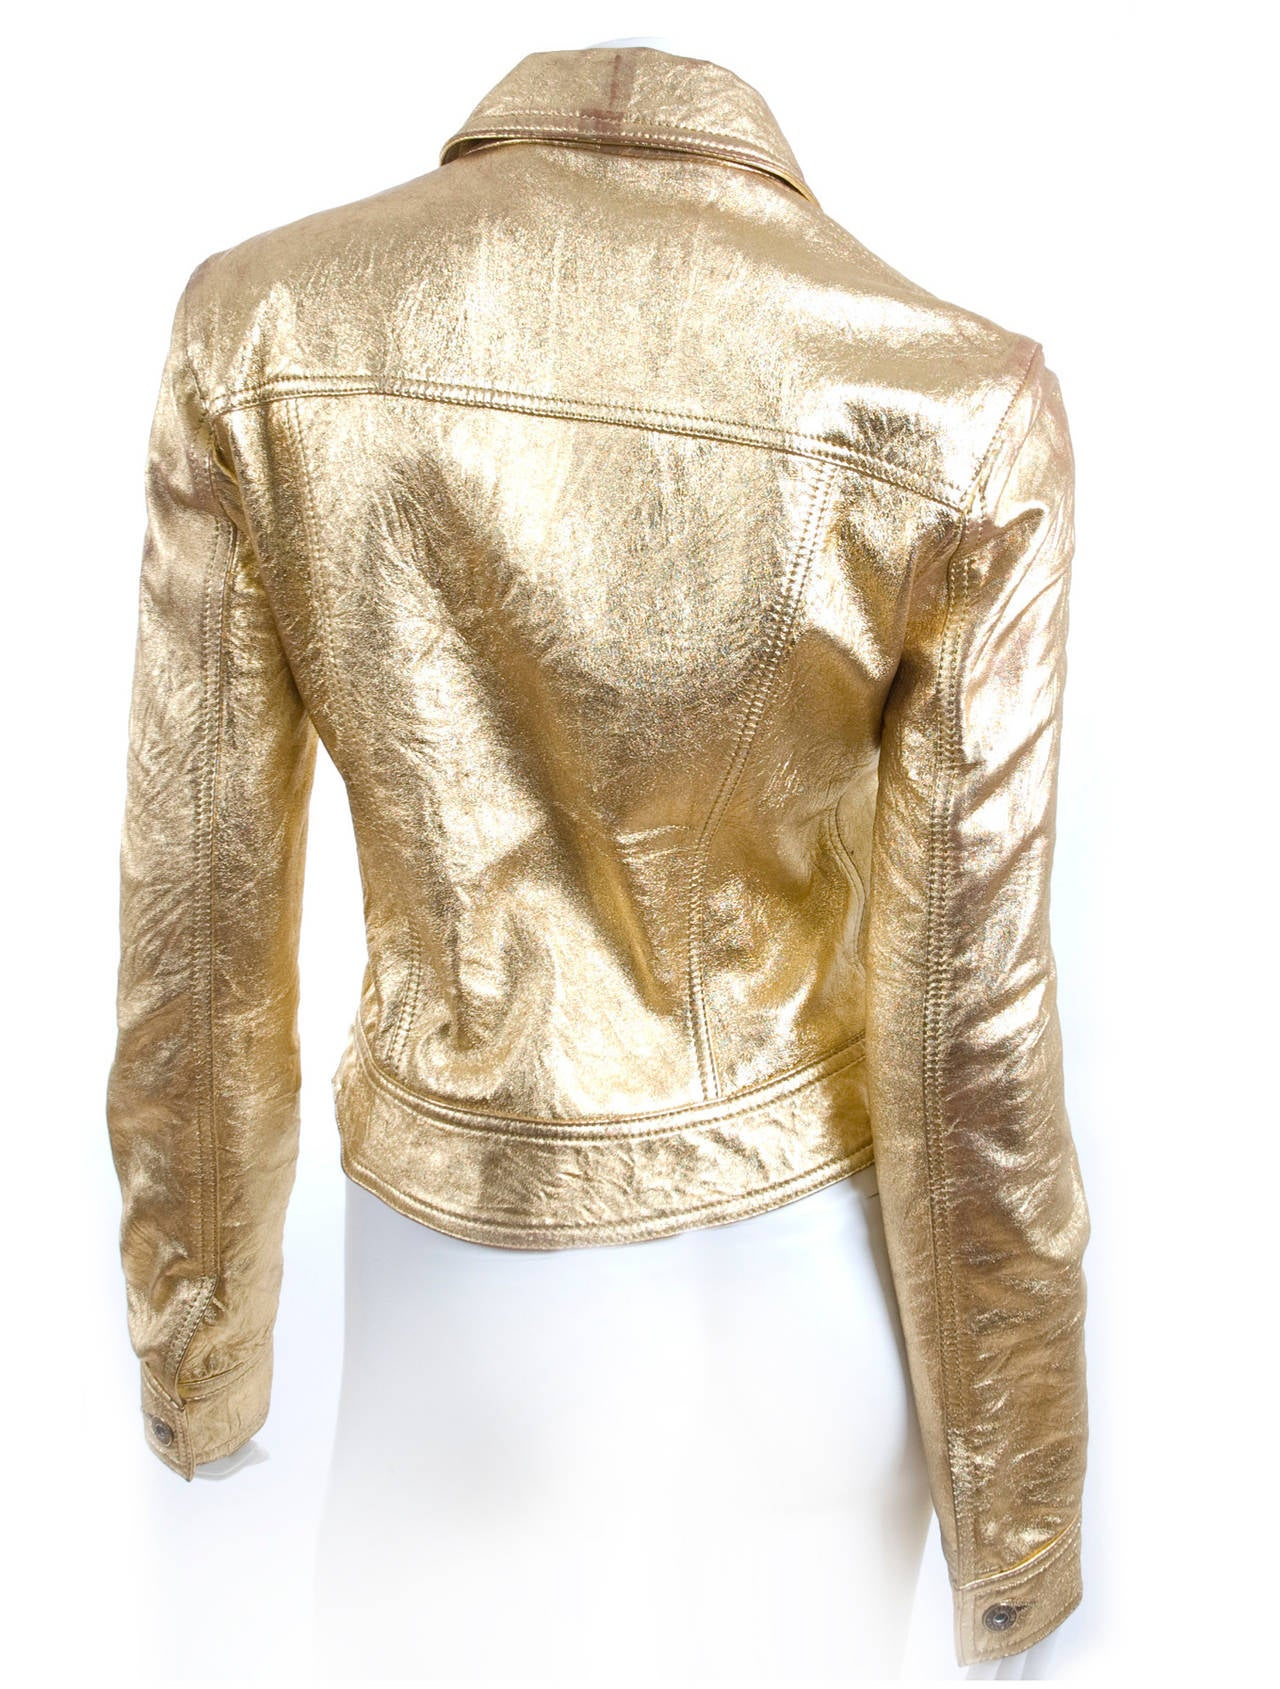 80's  Moschino Jeans Gold Leather Jacket 7